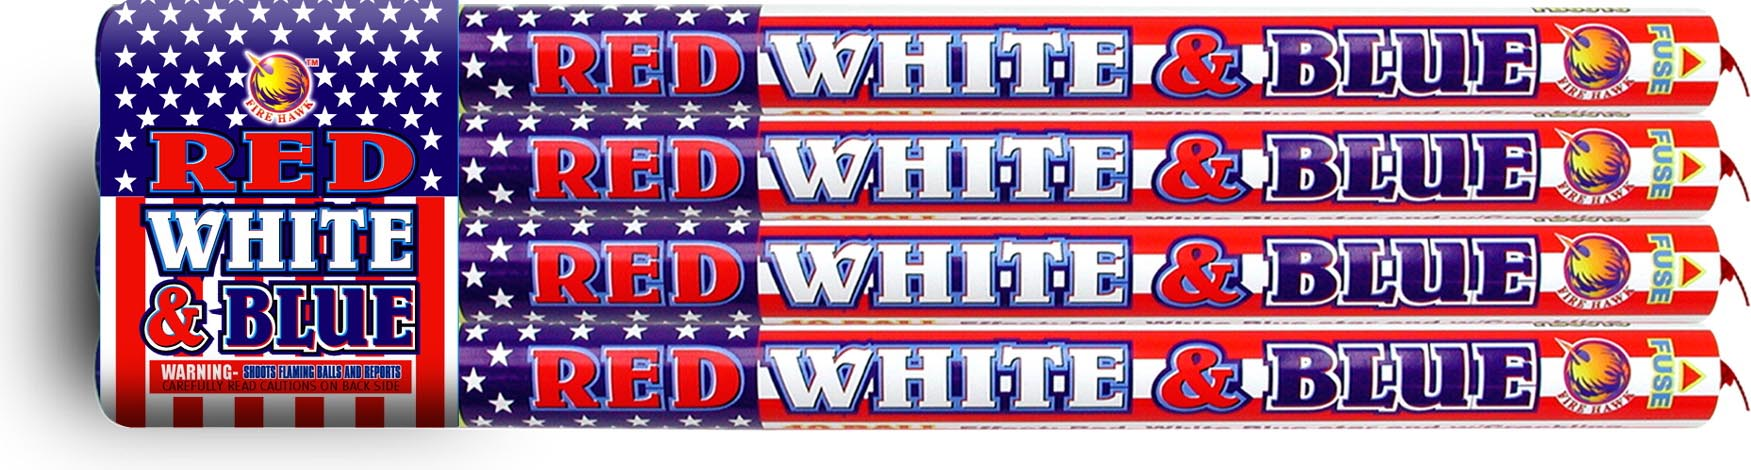 FB6016-Red-White-Blue-Crackling